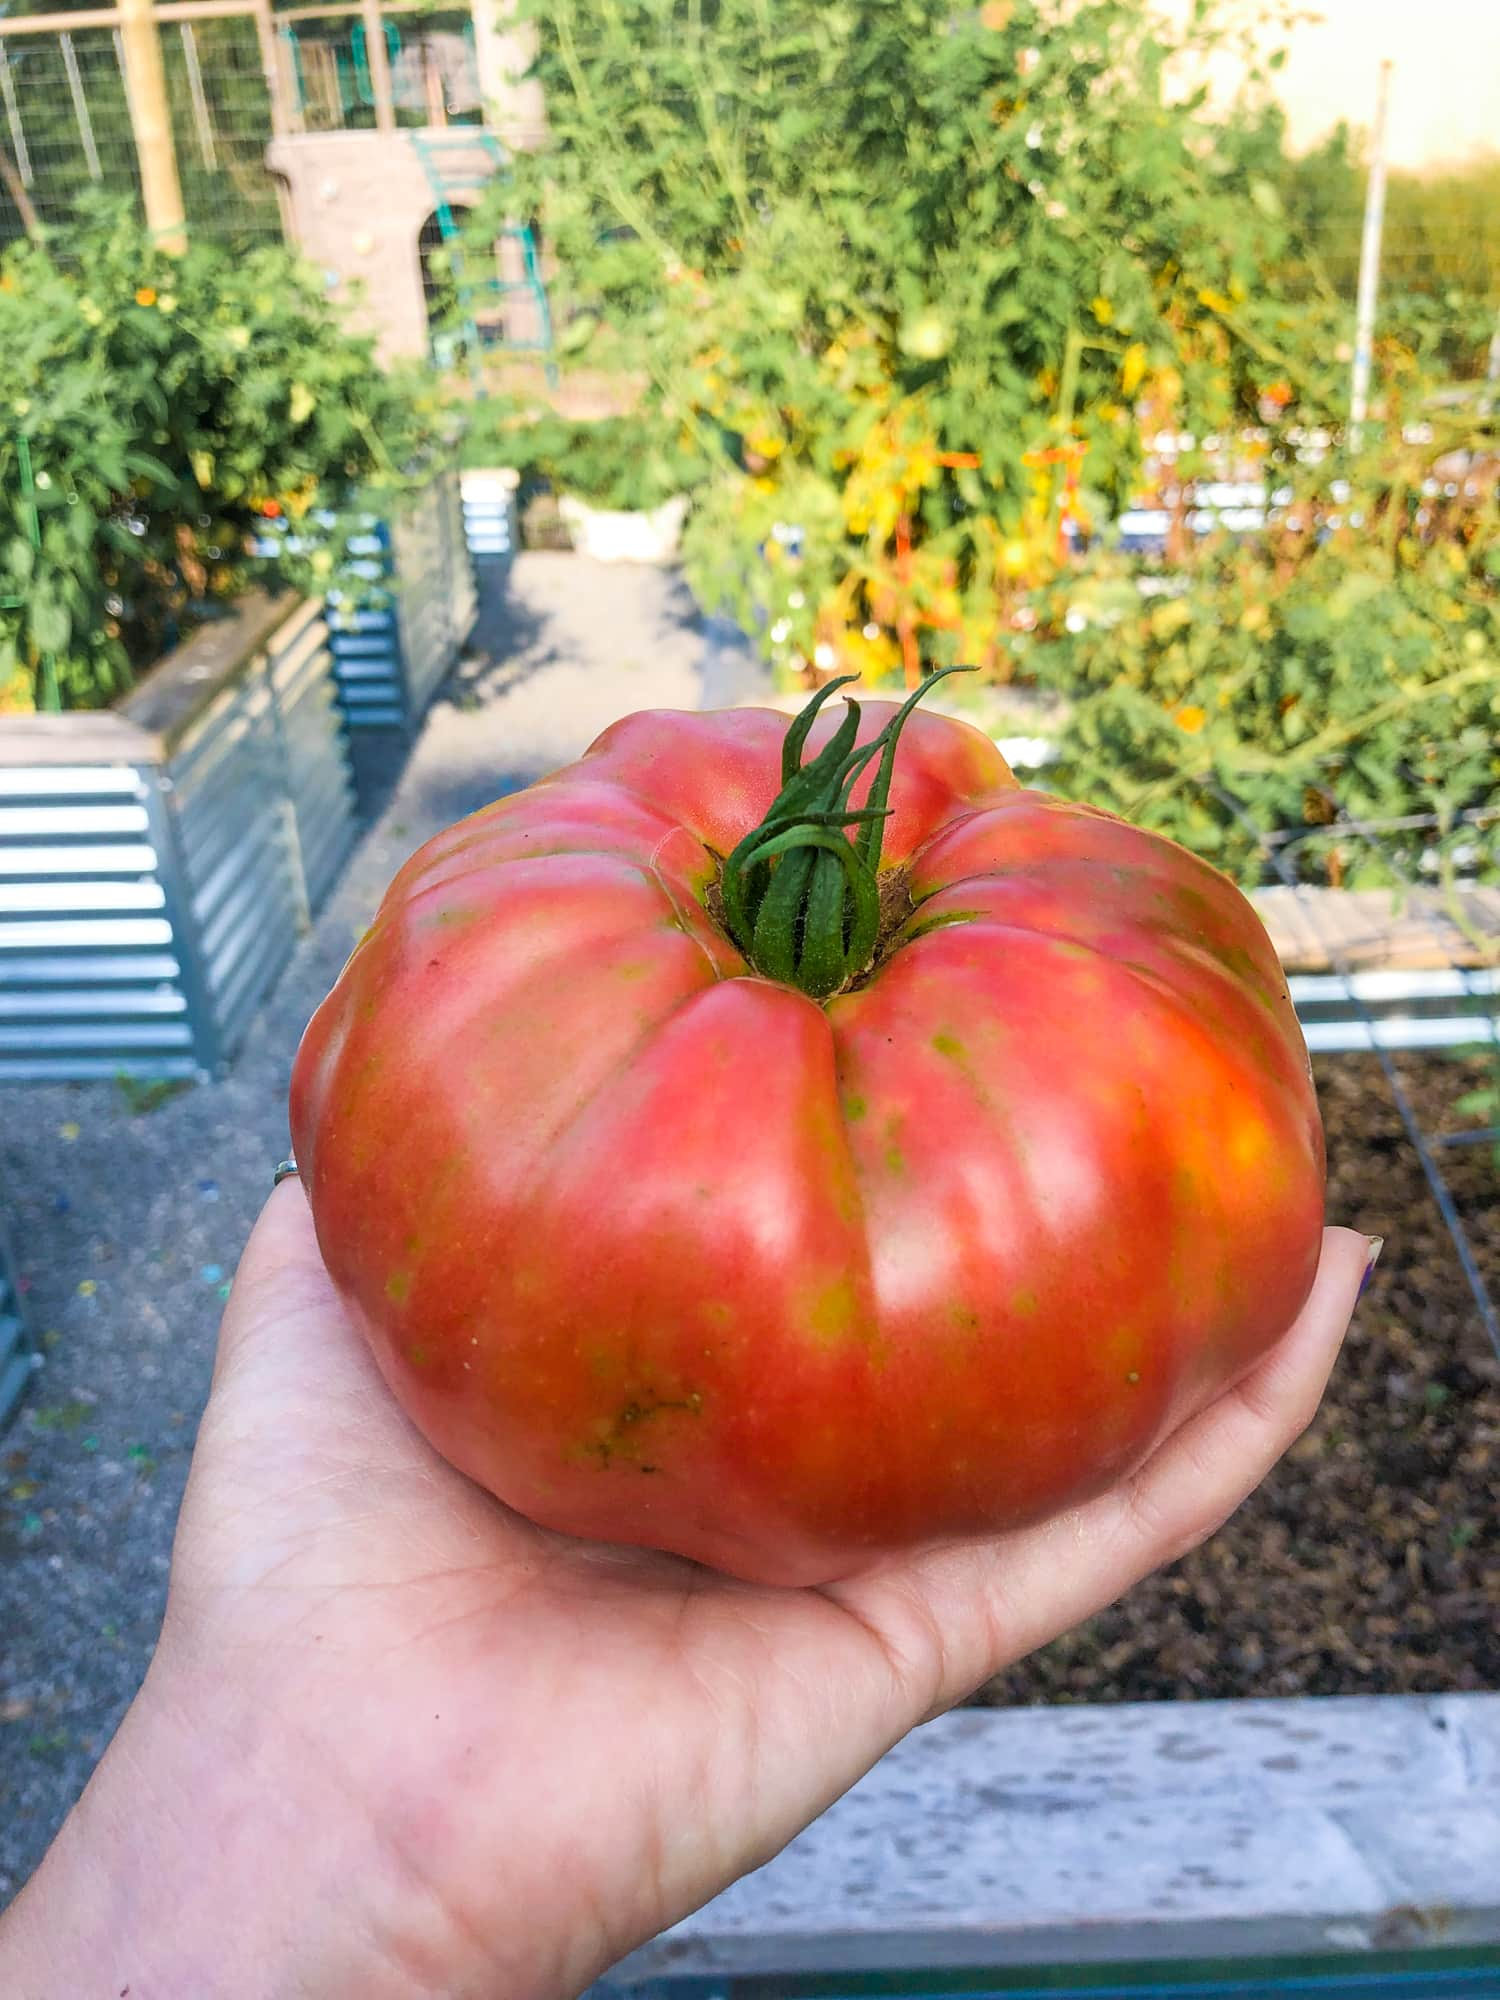 Hand holding a ripe German pink tomato